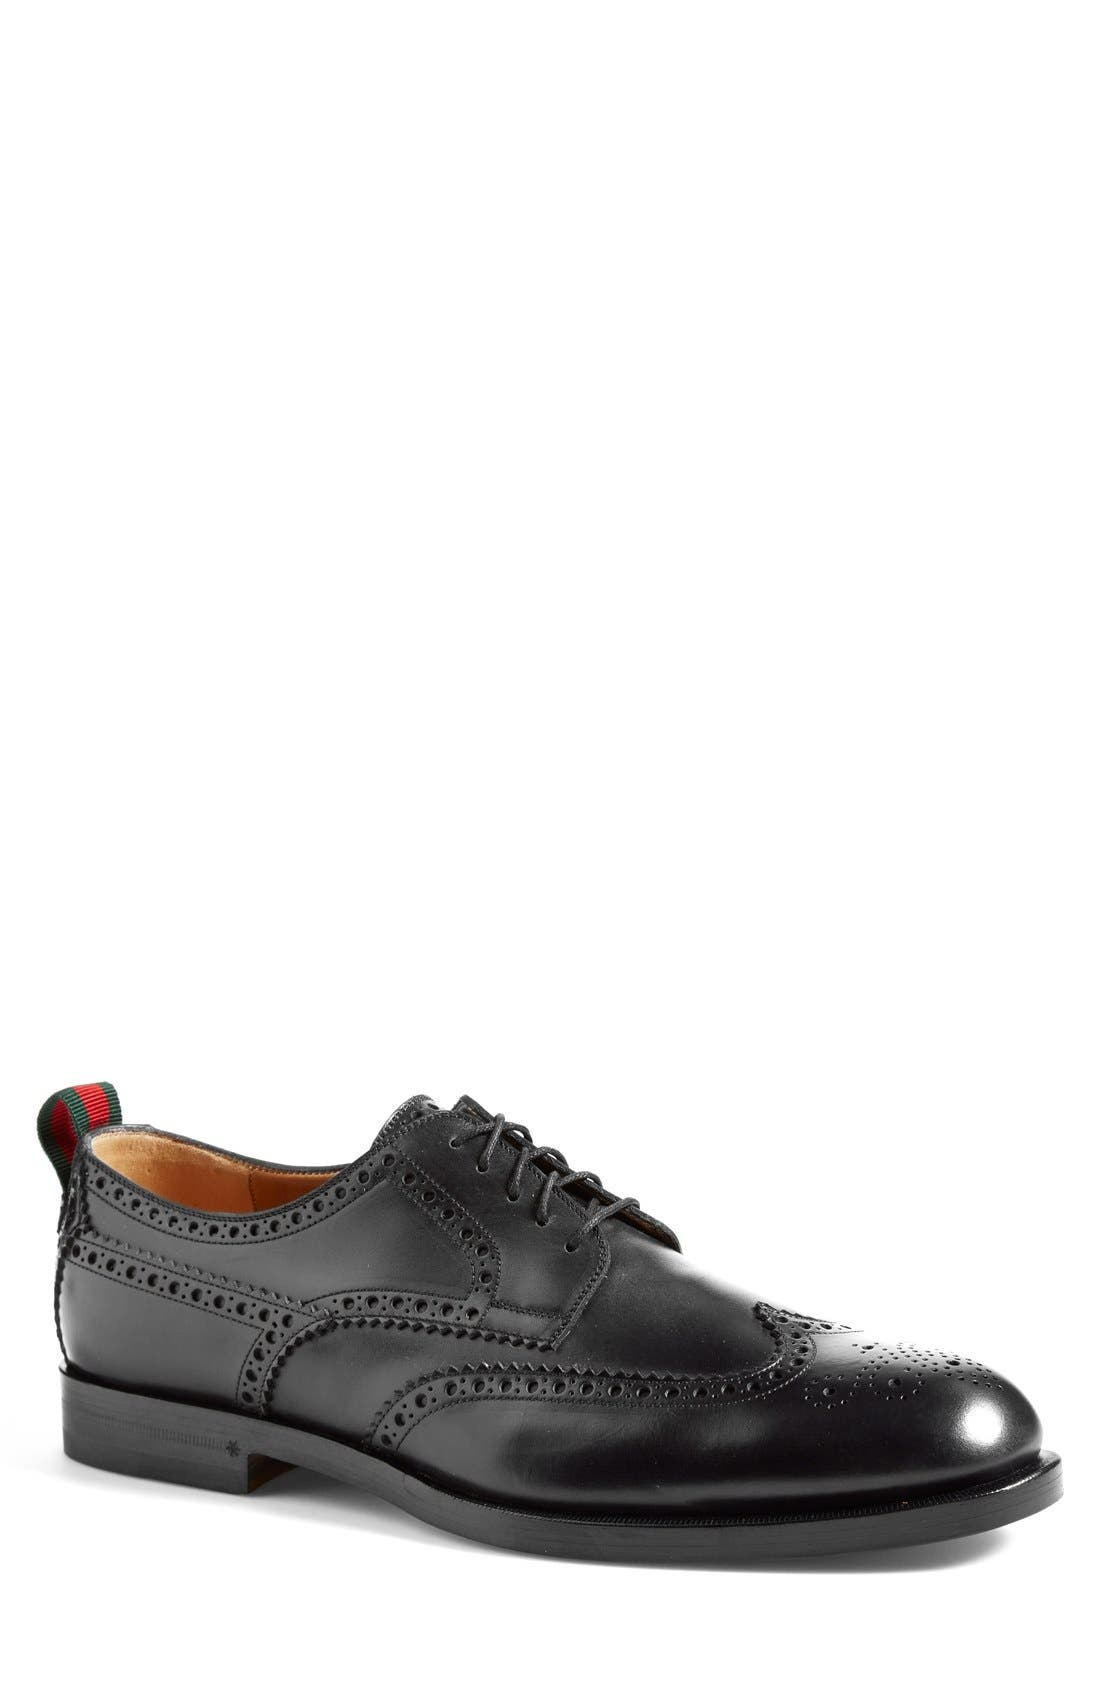 GUCCI 'Strand' Wingtip Oxford